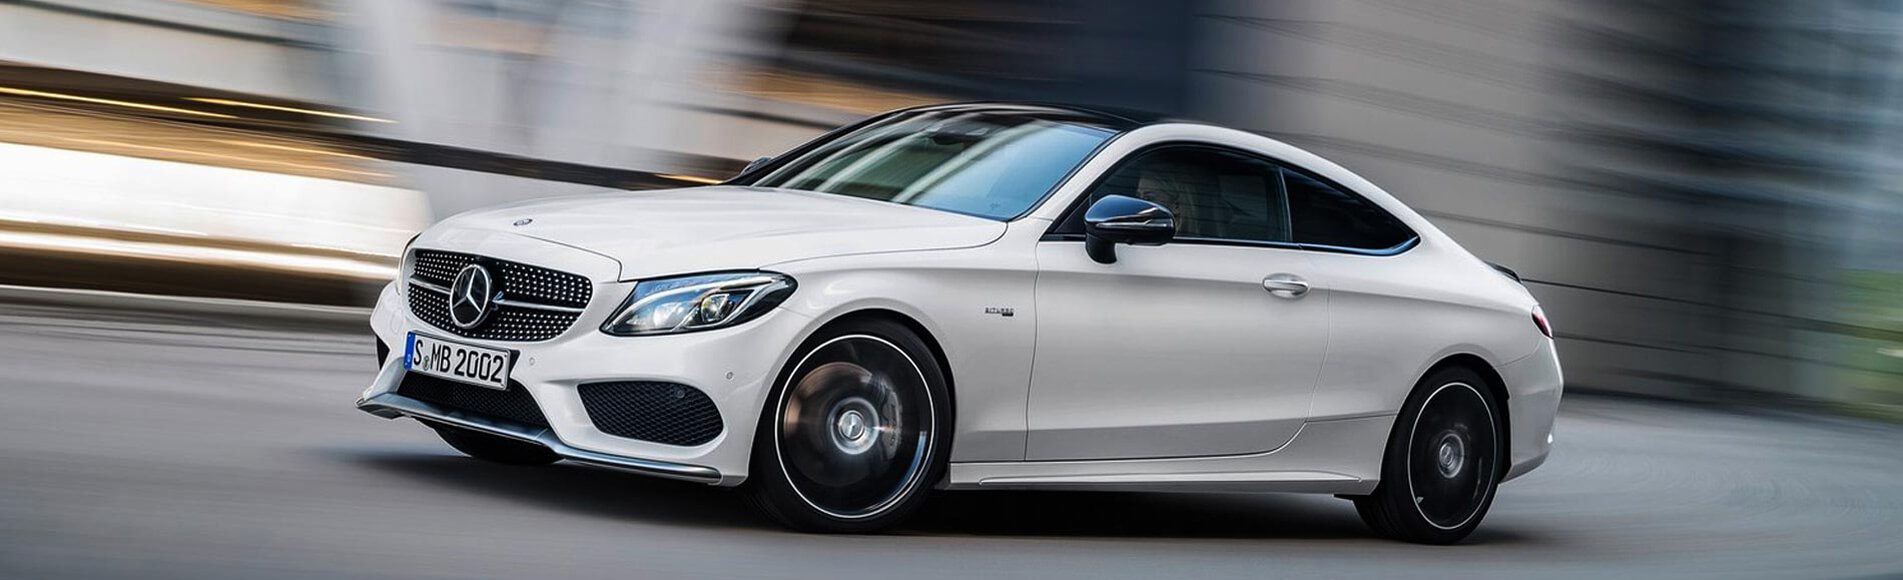 Sea auto sales luxury and sports car edmonds seattle for Mercedes benz lease seattle